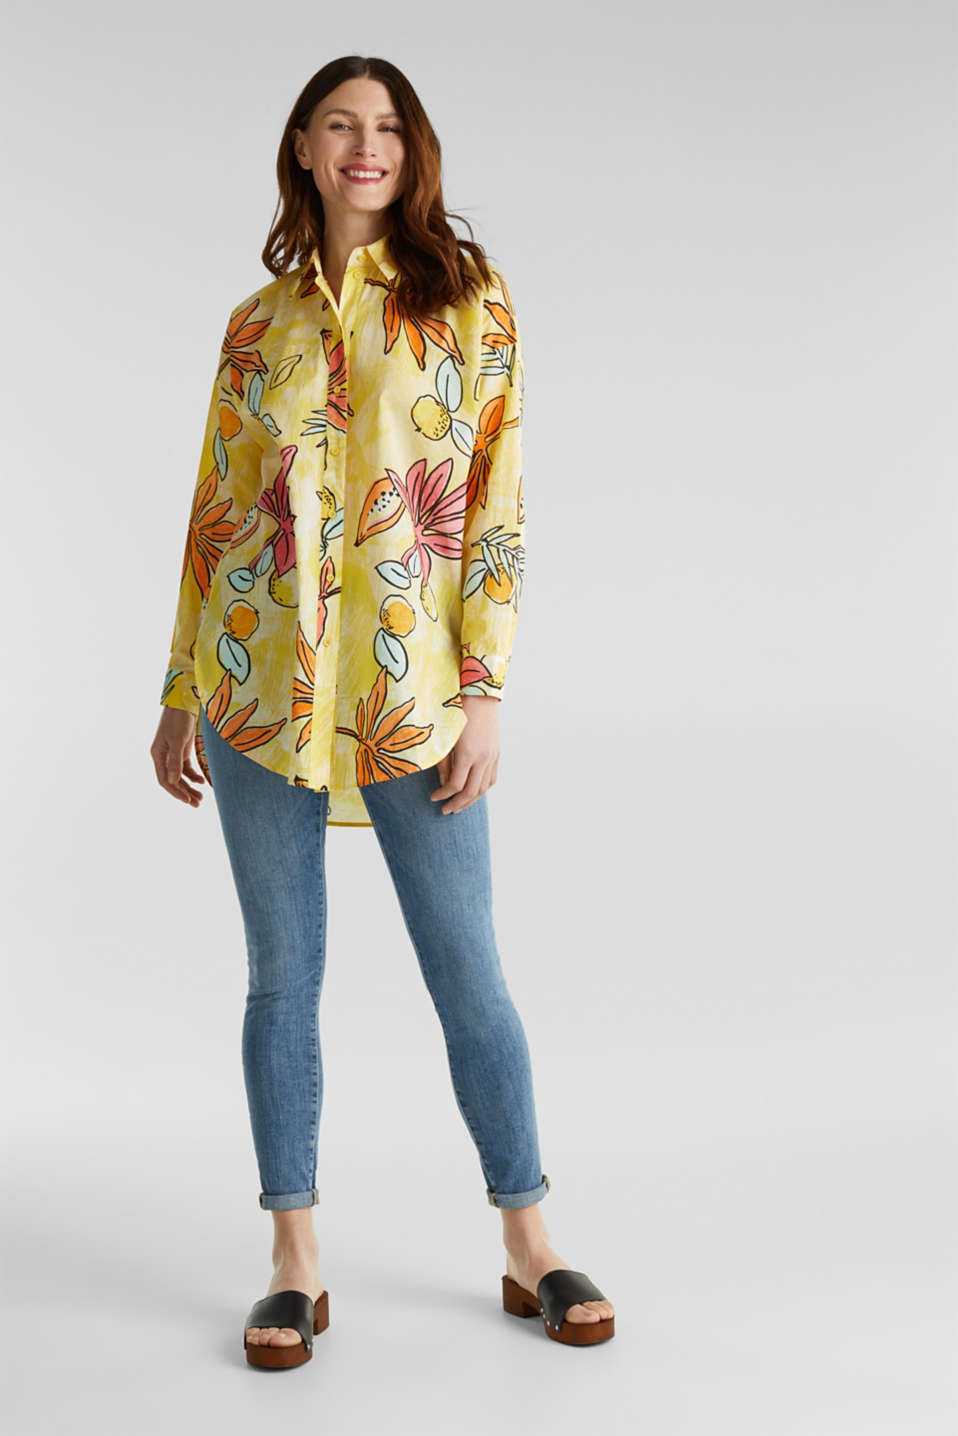 Longbluse mit Print, 100% Baumwolle, BRIGHT YELLOW 4, detail image number 1